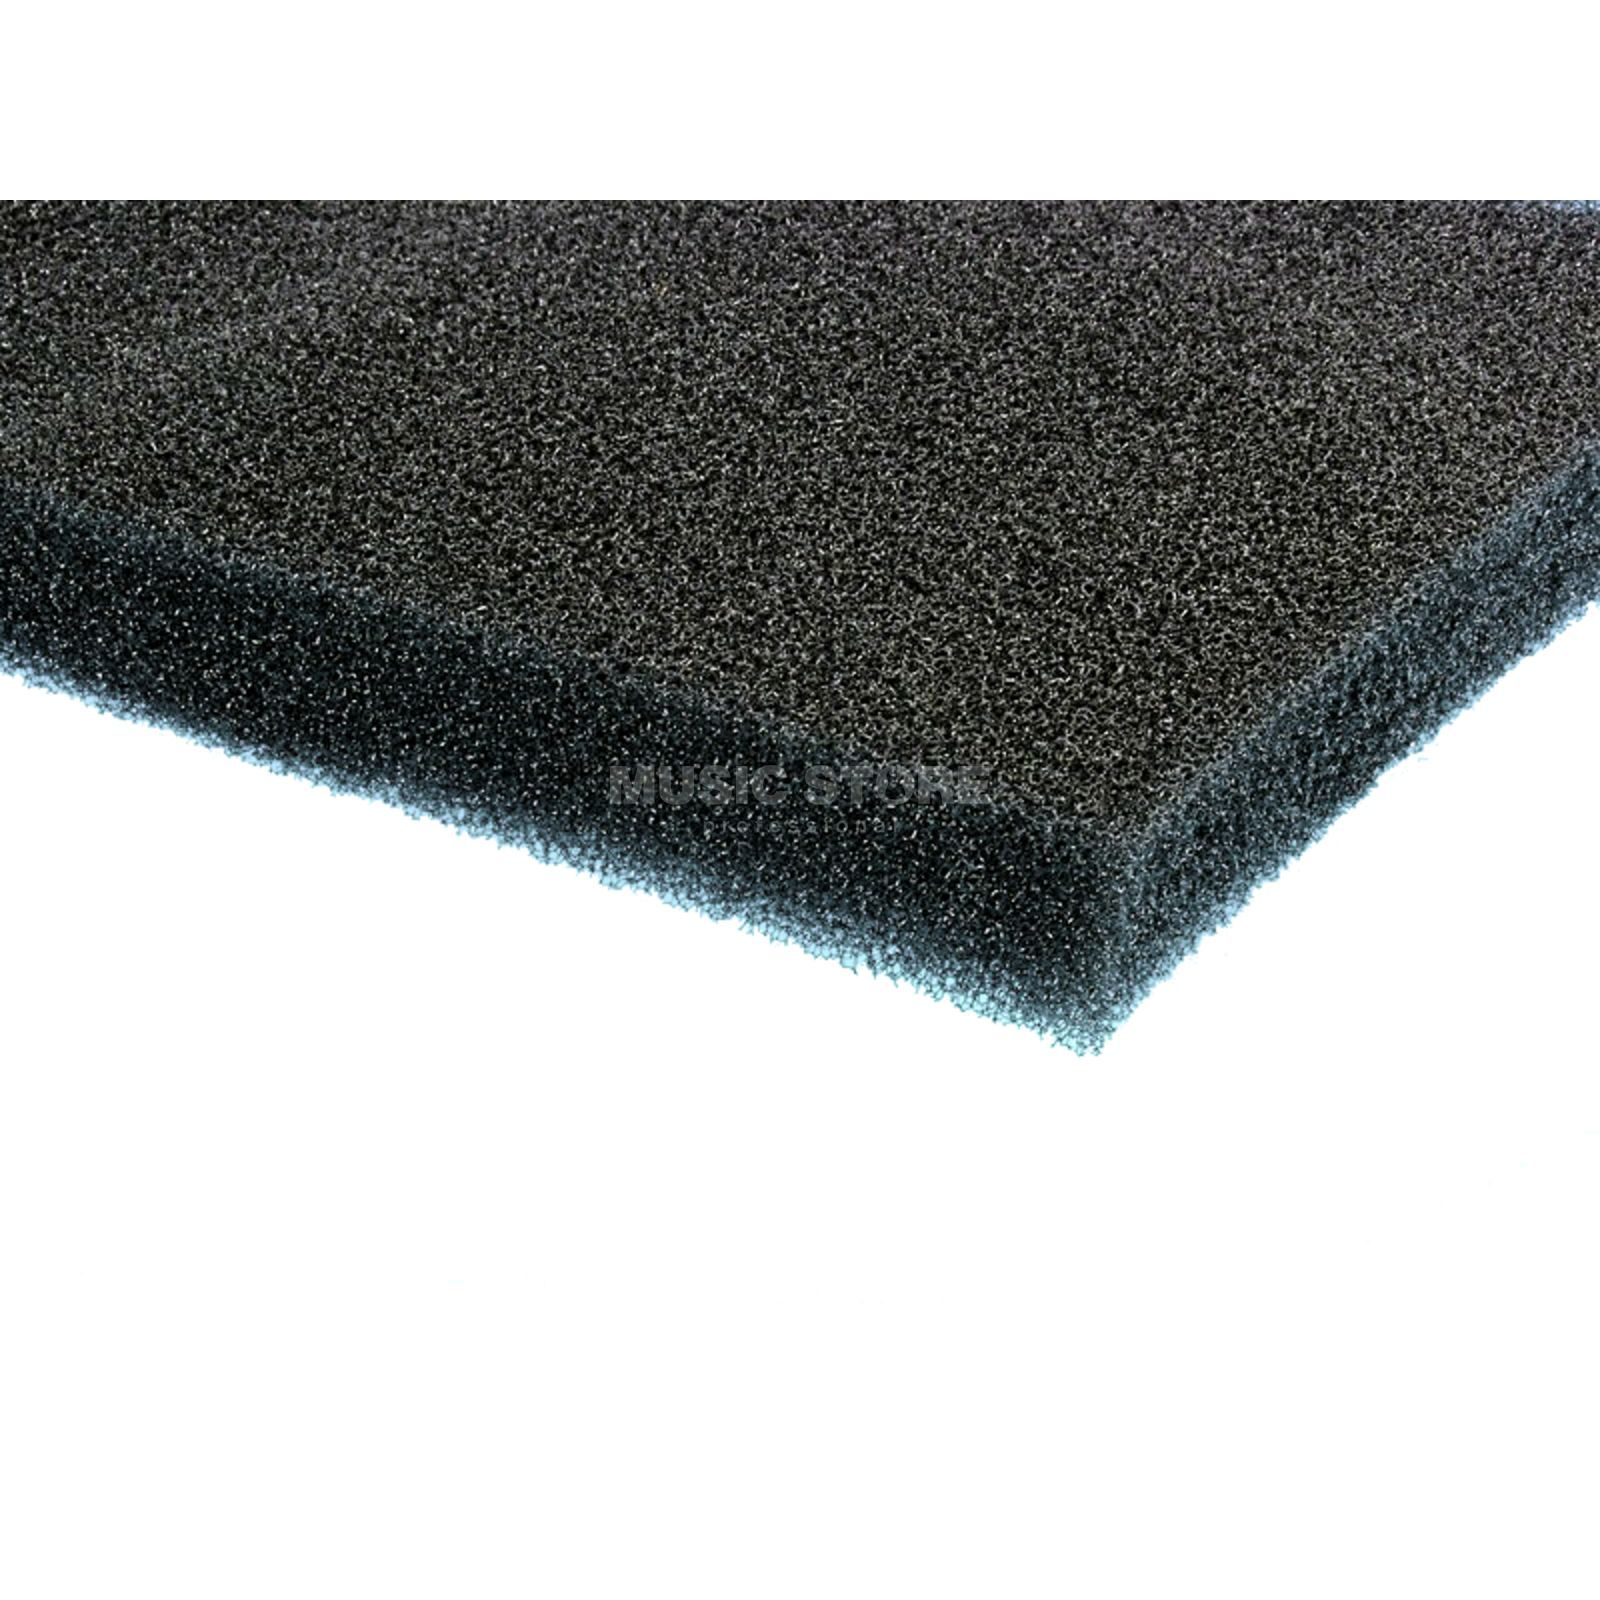 Adam Hall Speaker front foam 200 x 100 cm, 5 mm Produktbillede